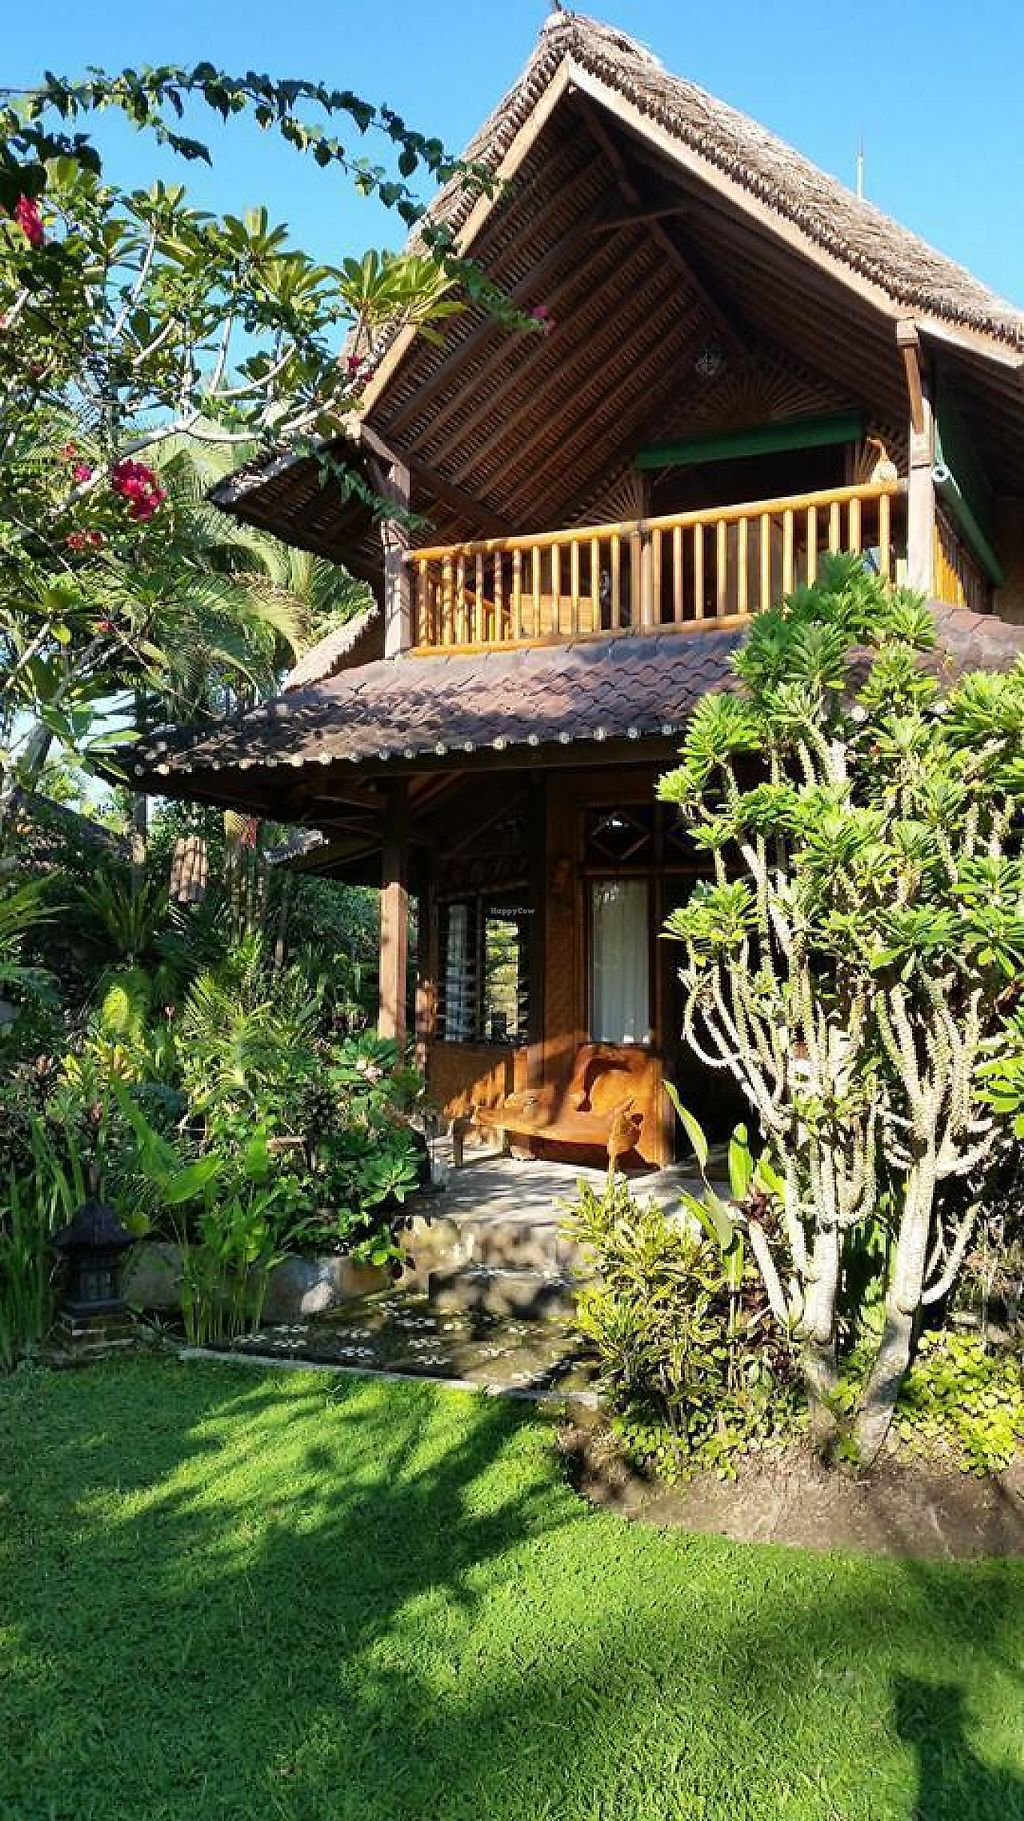 """Photo of Bali Firefly BnB  by <a href=""""/members/profile/Stevie"""">Stevie</a> <br/>Bali Firefly BnB <br/> May 30, 2017  - <a href='/contact/abuse/image/87815/264085'>Report</a>"""